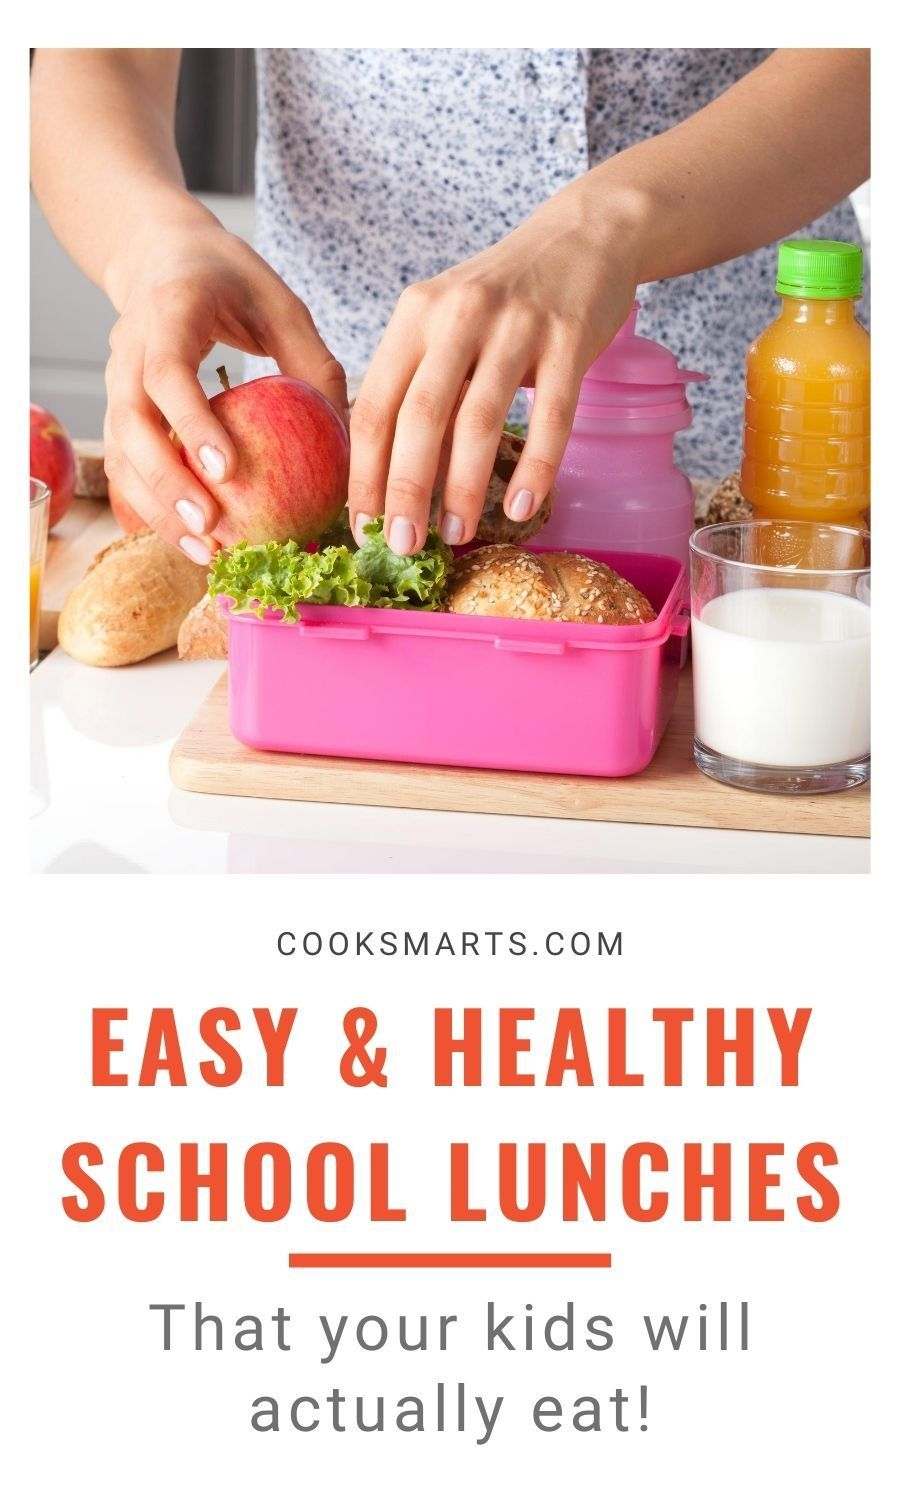 5 Top Tips For Kid-Friendly Healthy Lunch Ideas